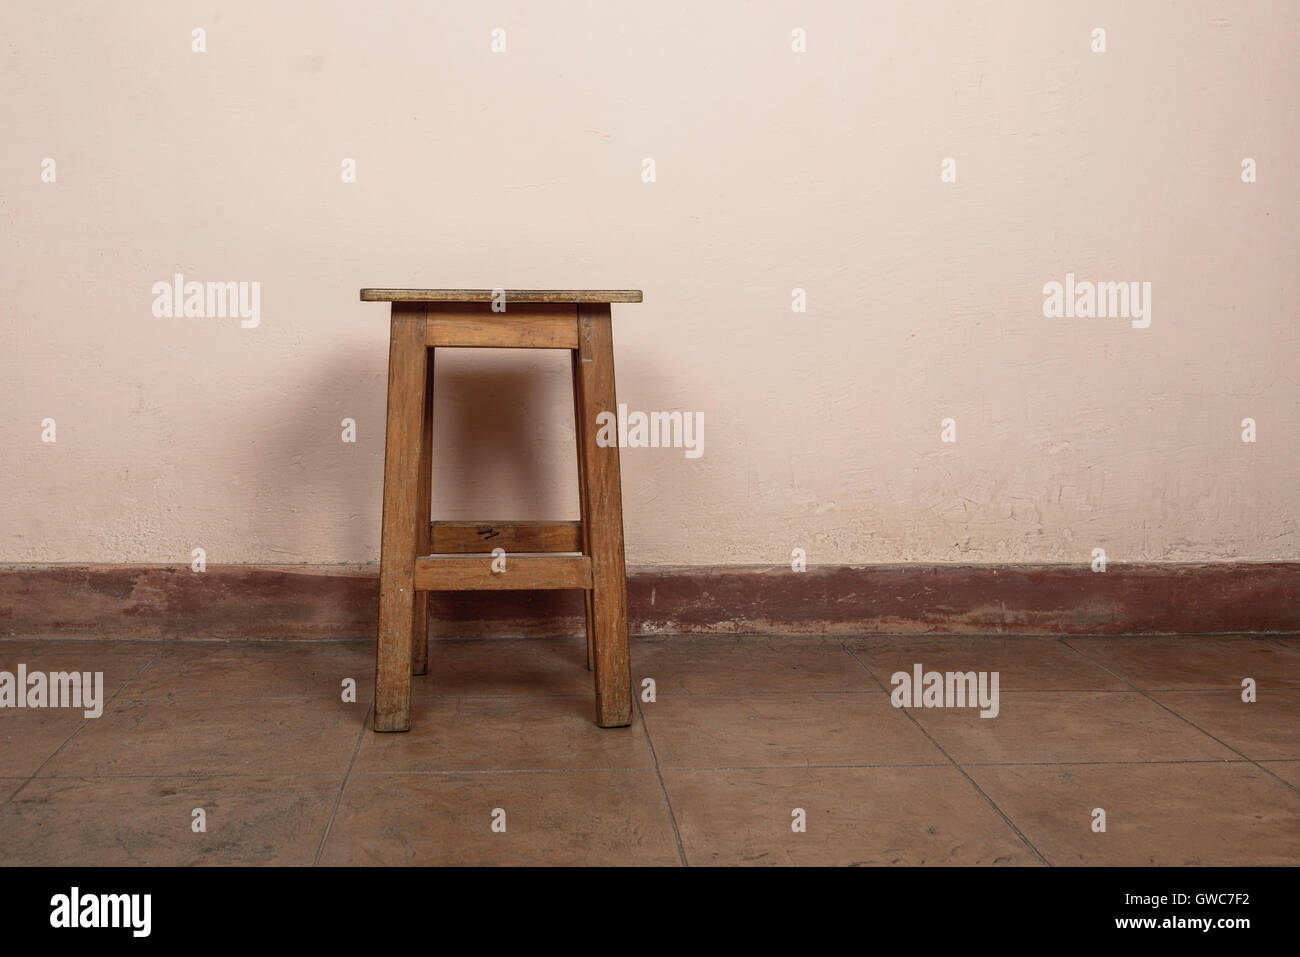 Rustic wooden stool, pink wall background - Stock Image